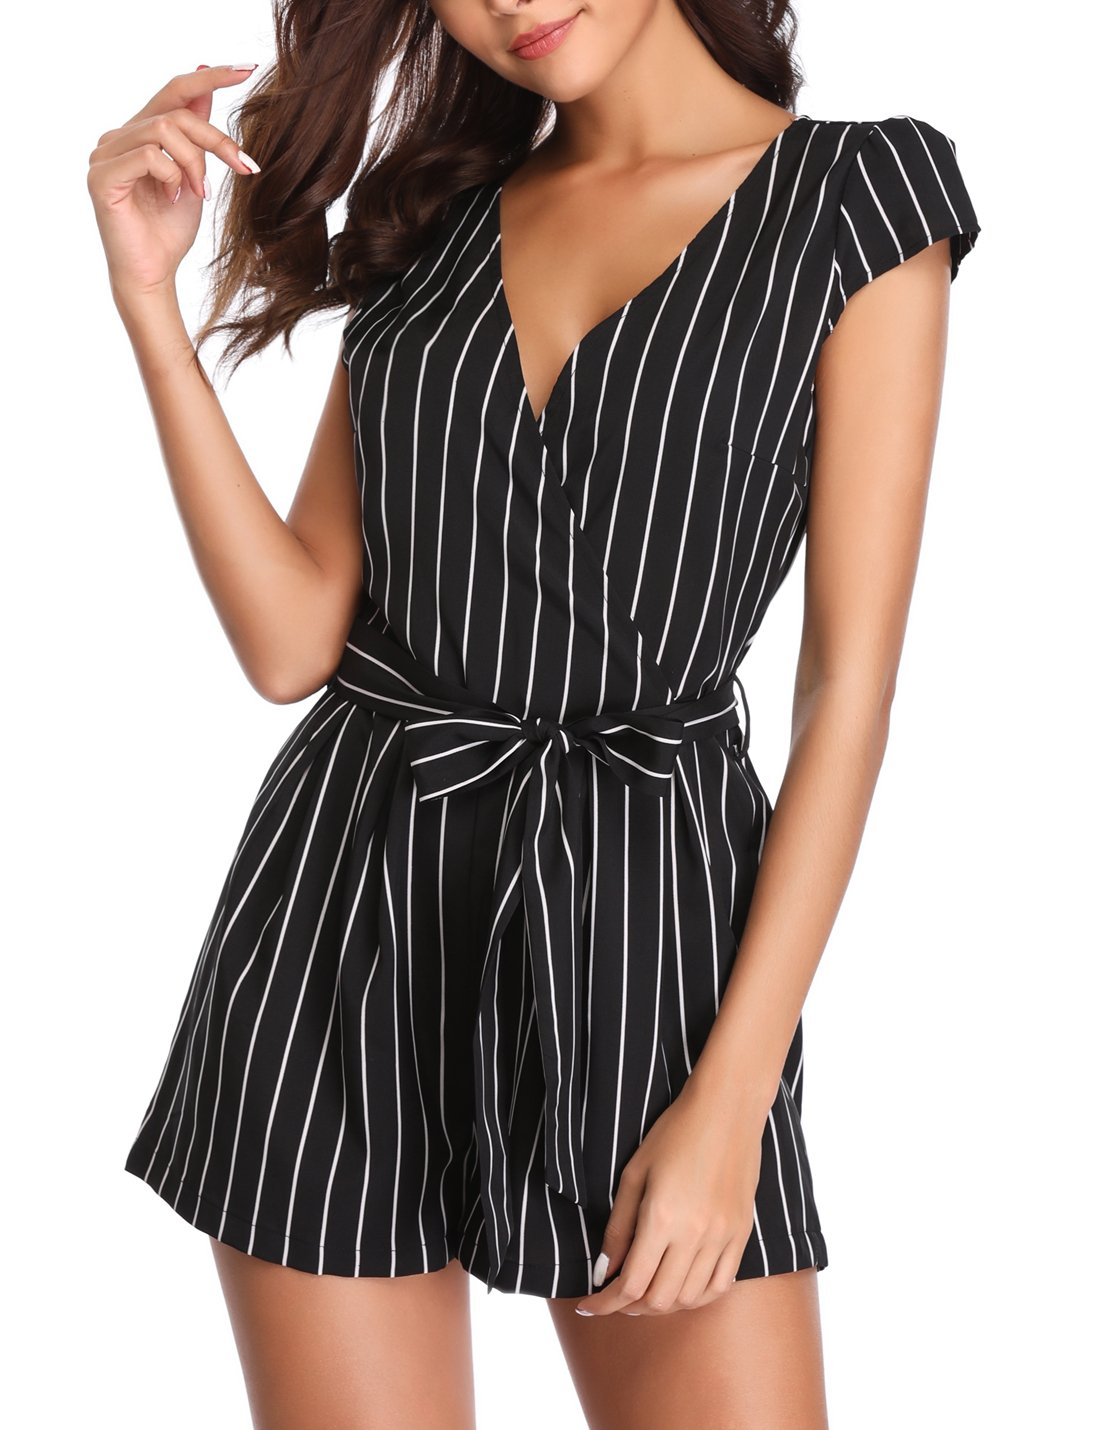 MISS MOLY Summer Rompers for Women Deep V Neck Sexy Short Sleeves Striped Casual Sexy Shorts Jumpsuit Beach/Party